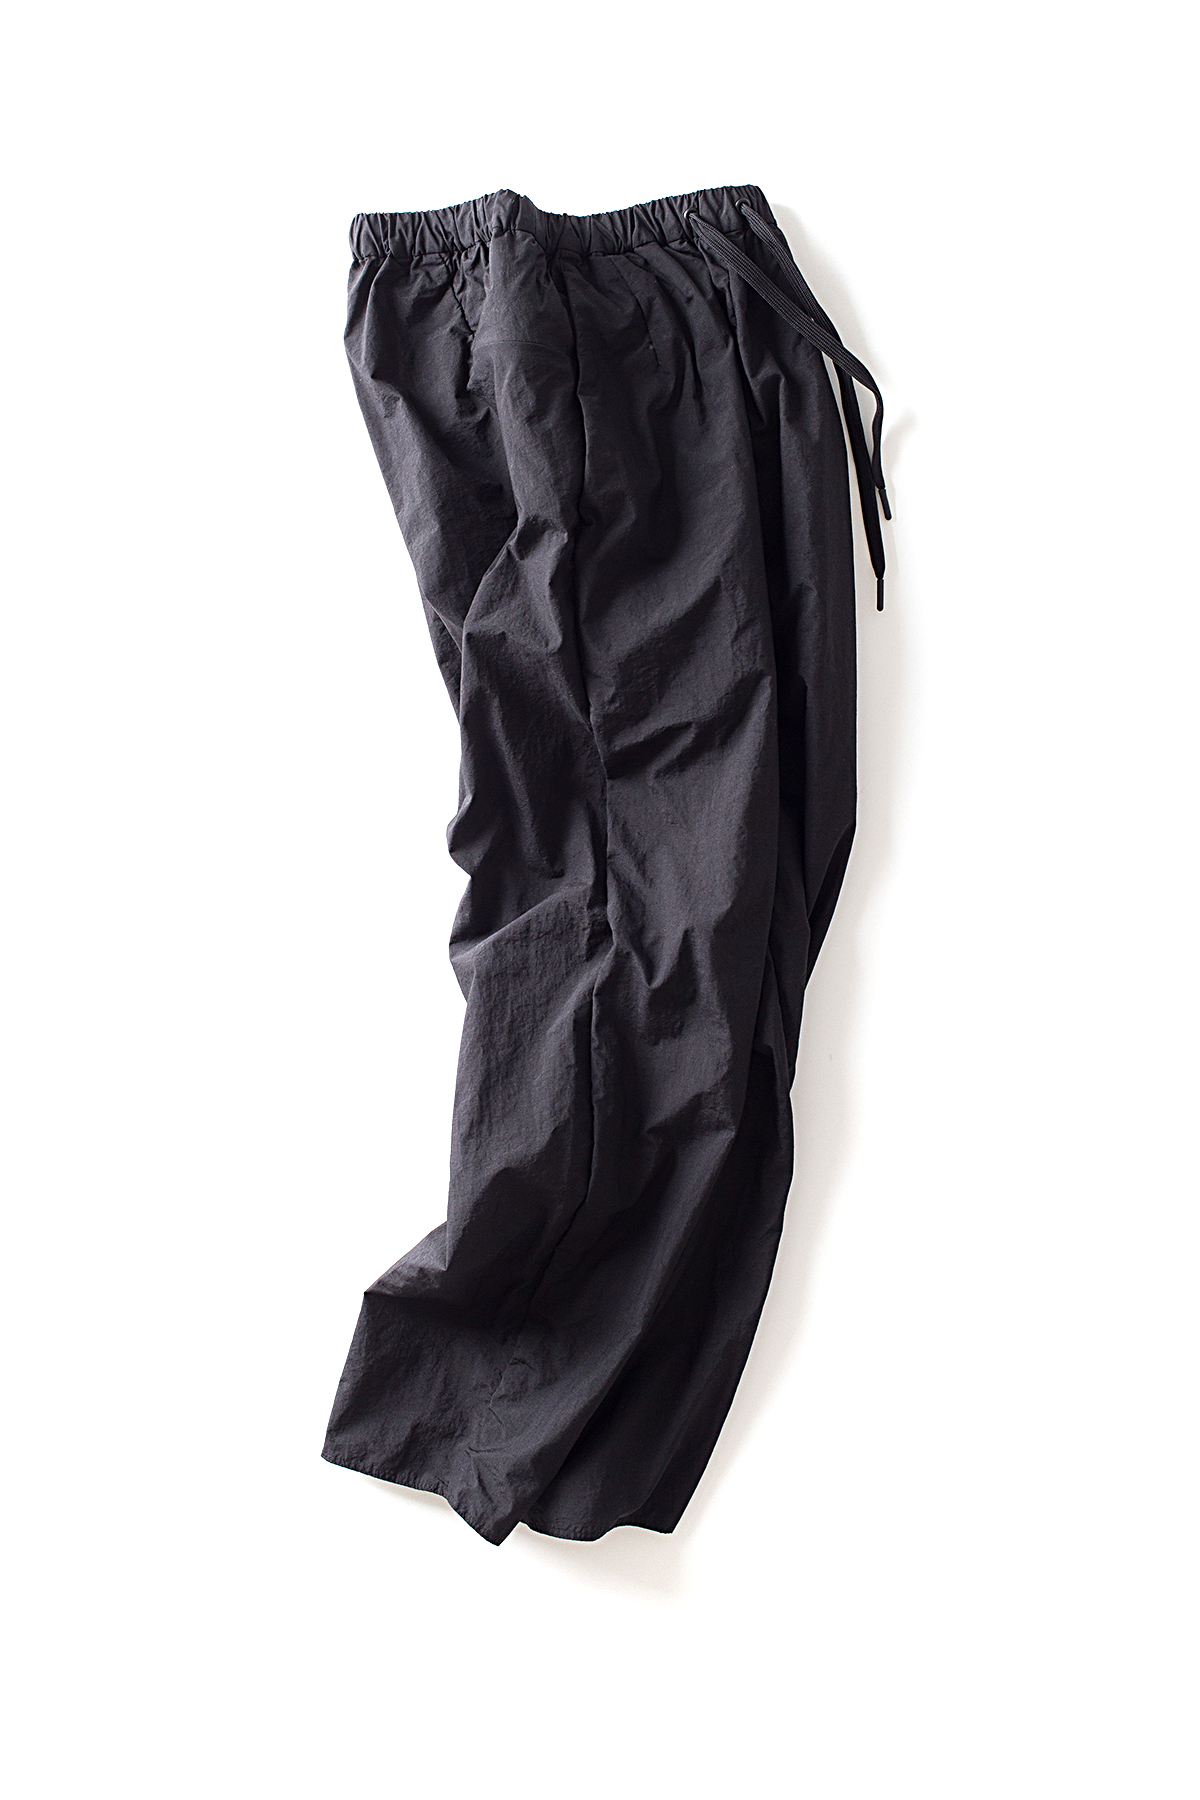 TEATORA : Wallet Pants P (Black)